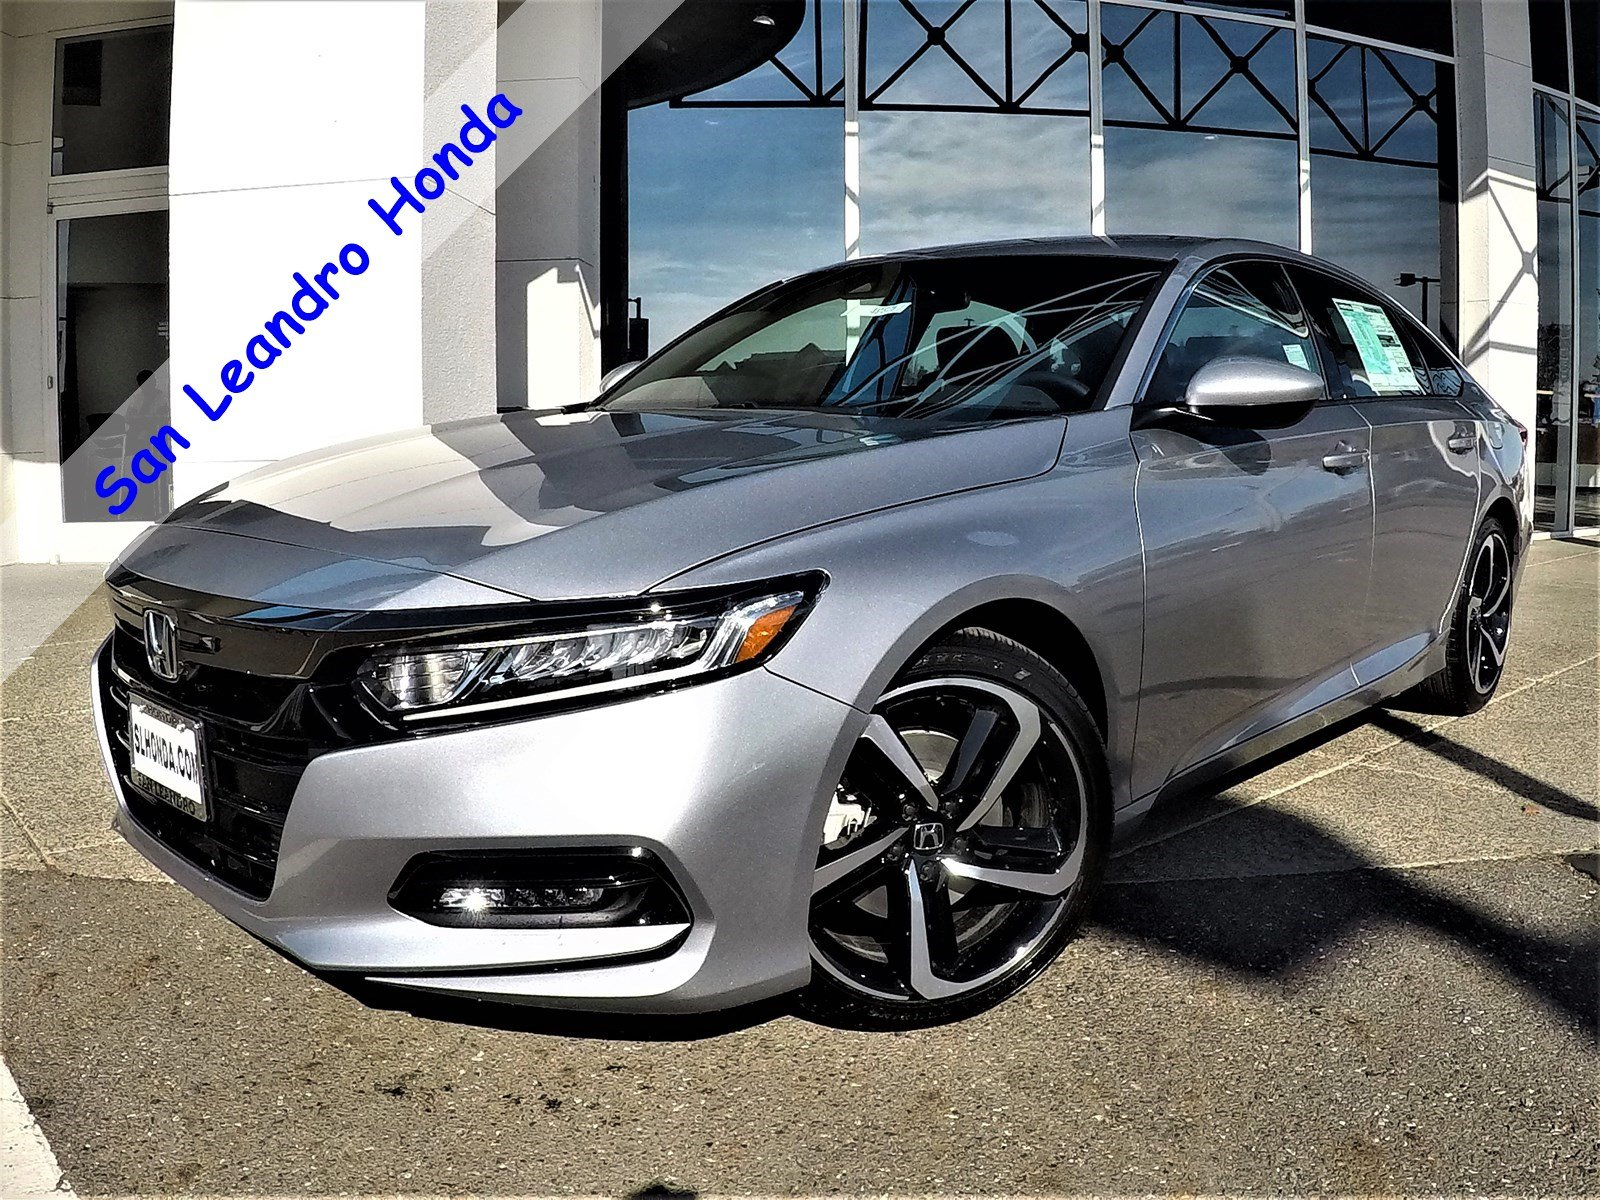 Low Prices 2018 Honda Accord Sport Vin 1HGCV1F39JA148926